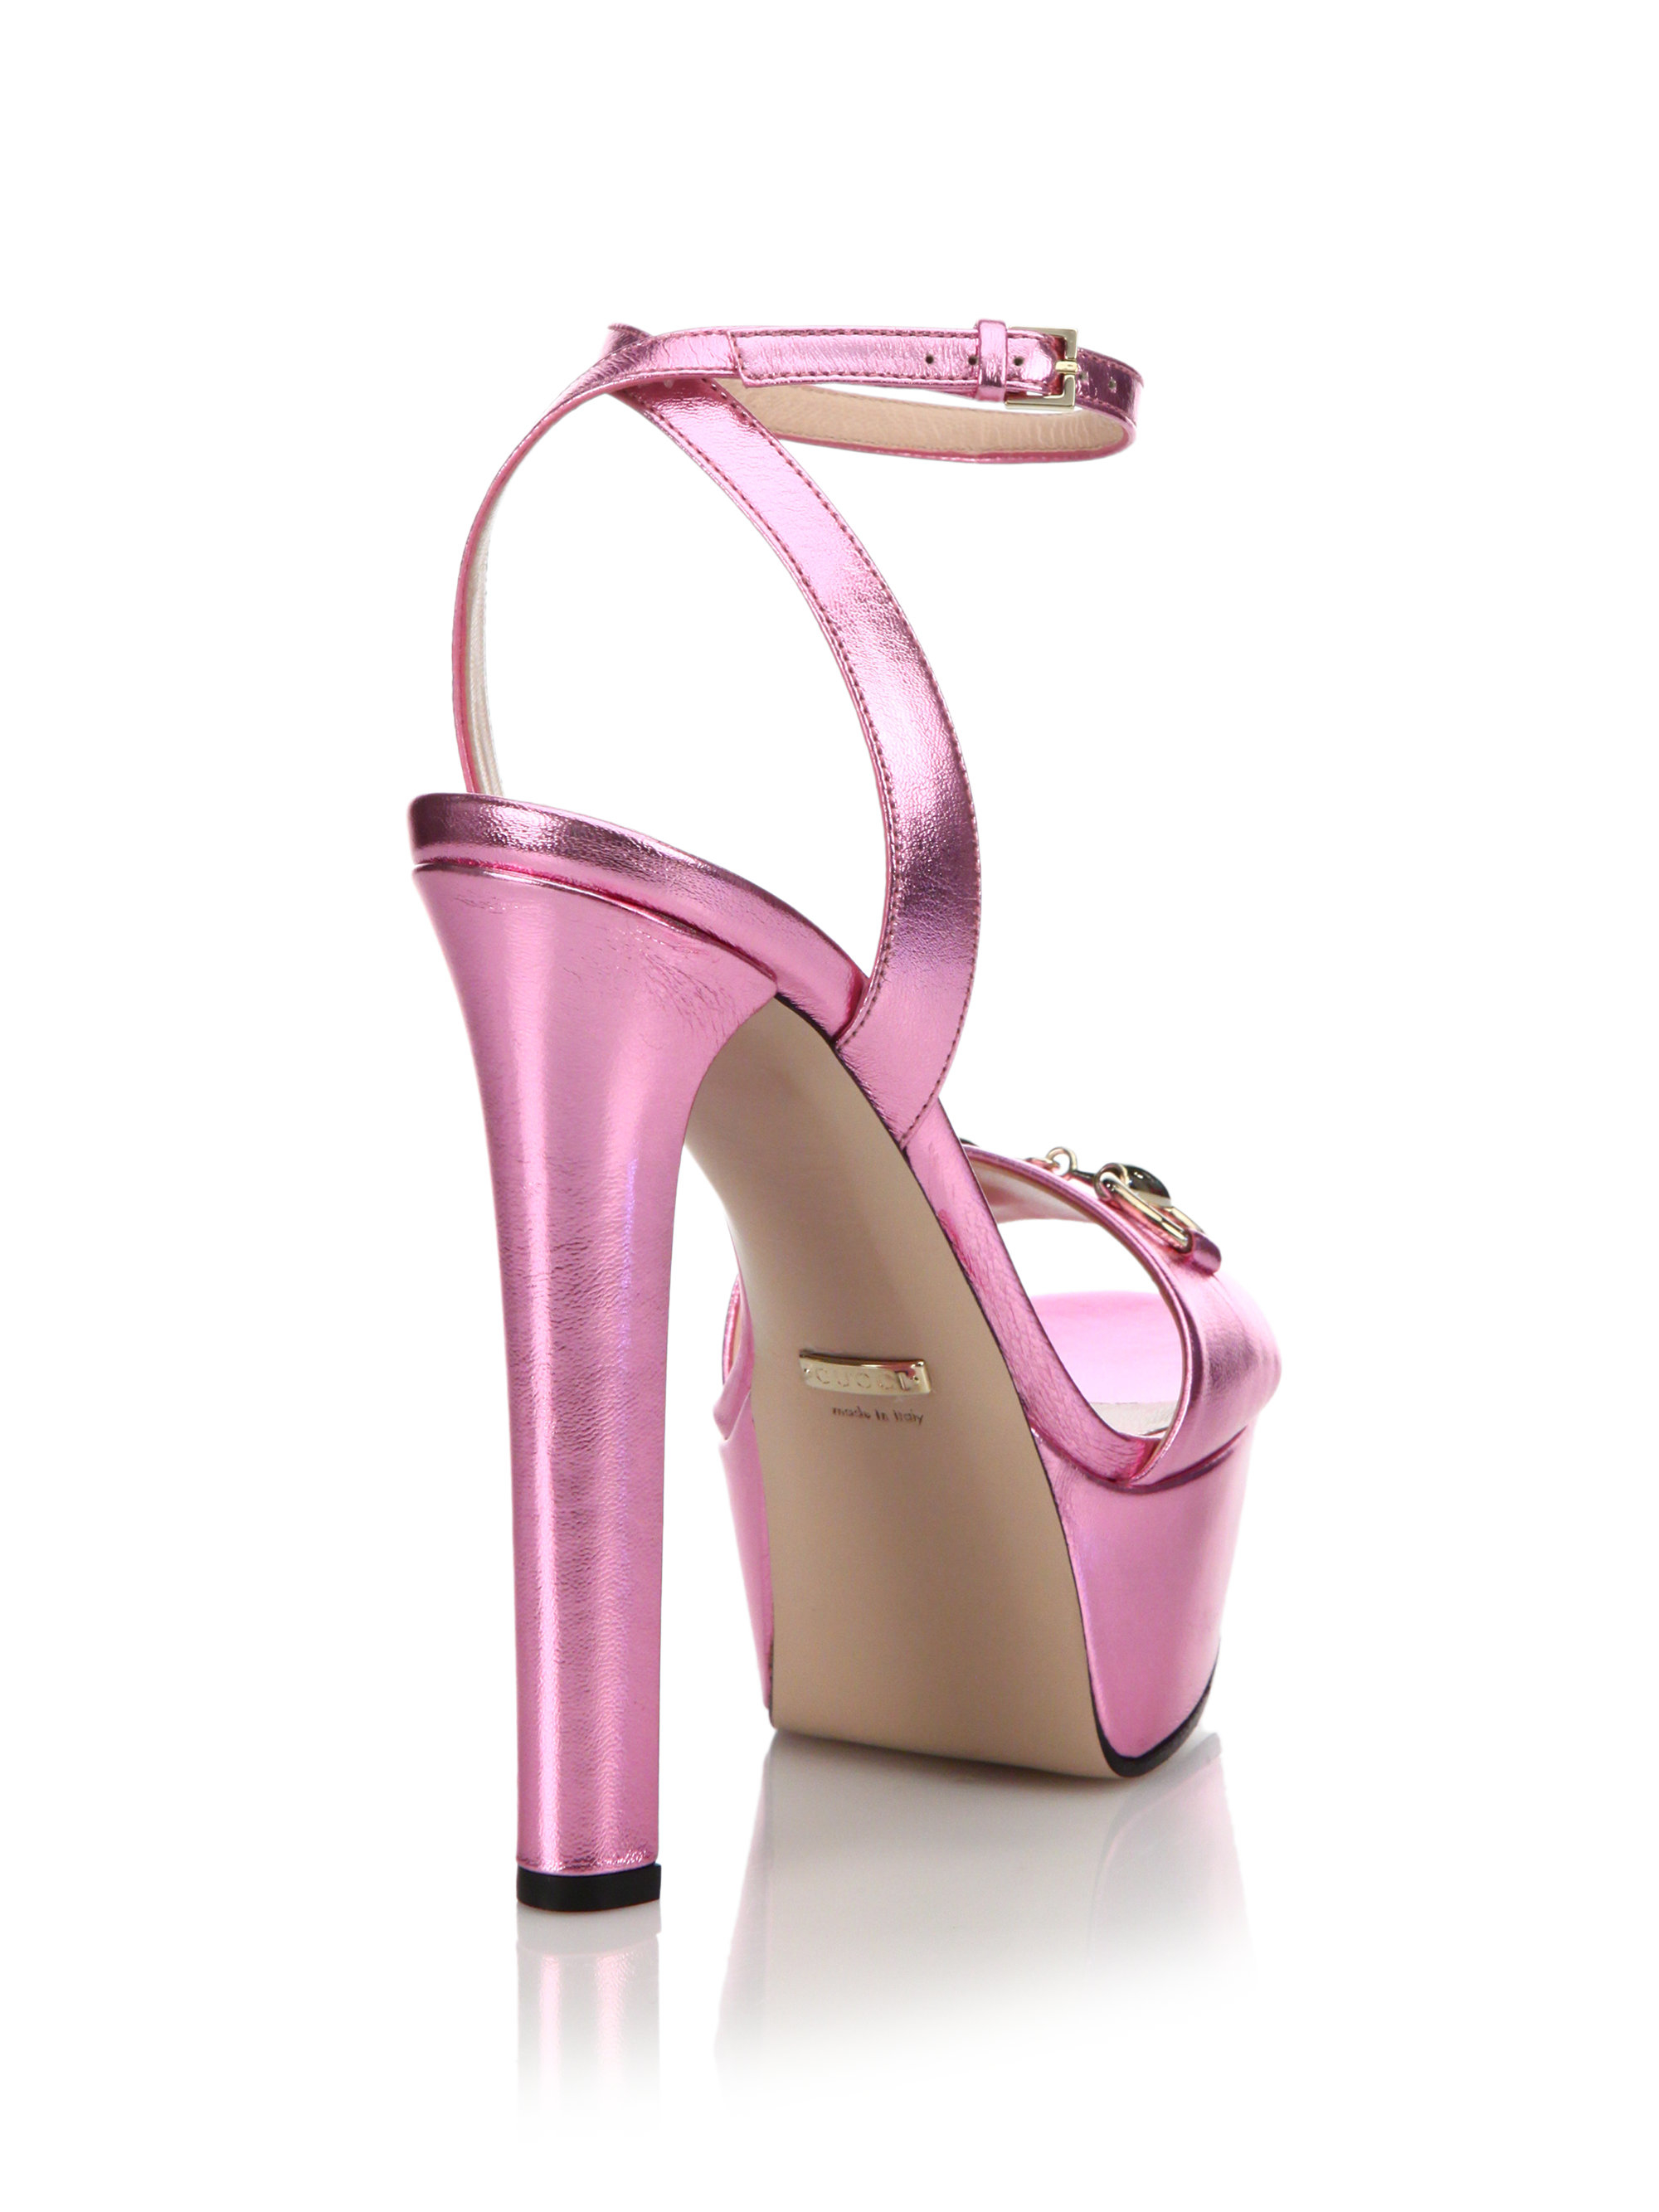 bcb8e706650 Lyst - Gucci Leila Metallic Leather Platform Sandals in Pink